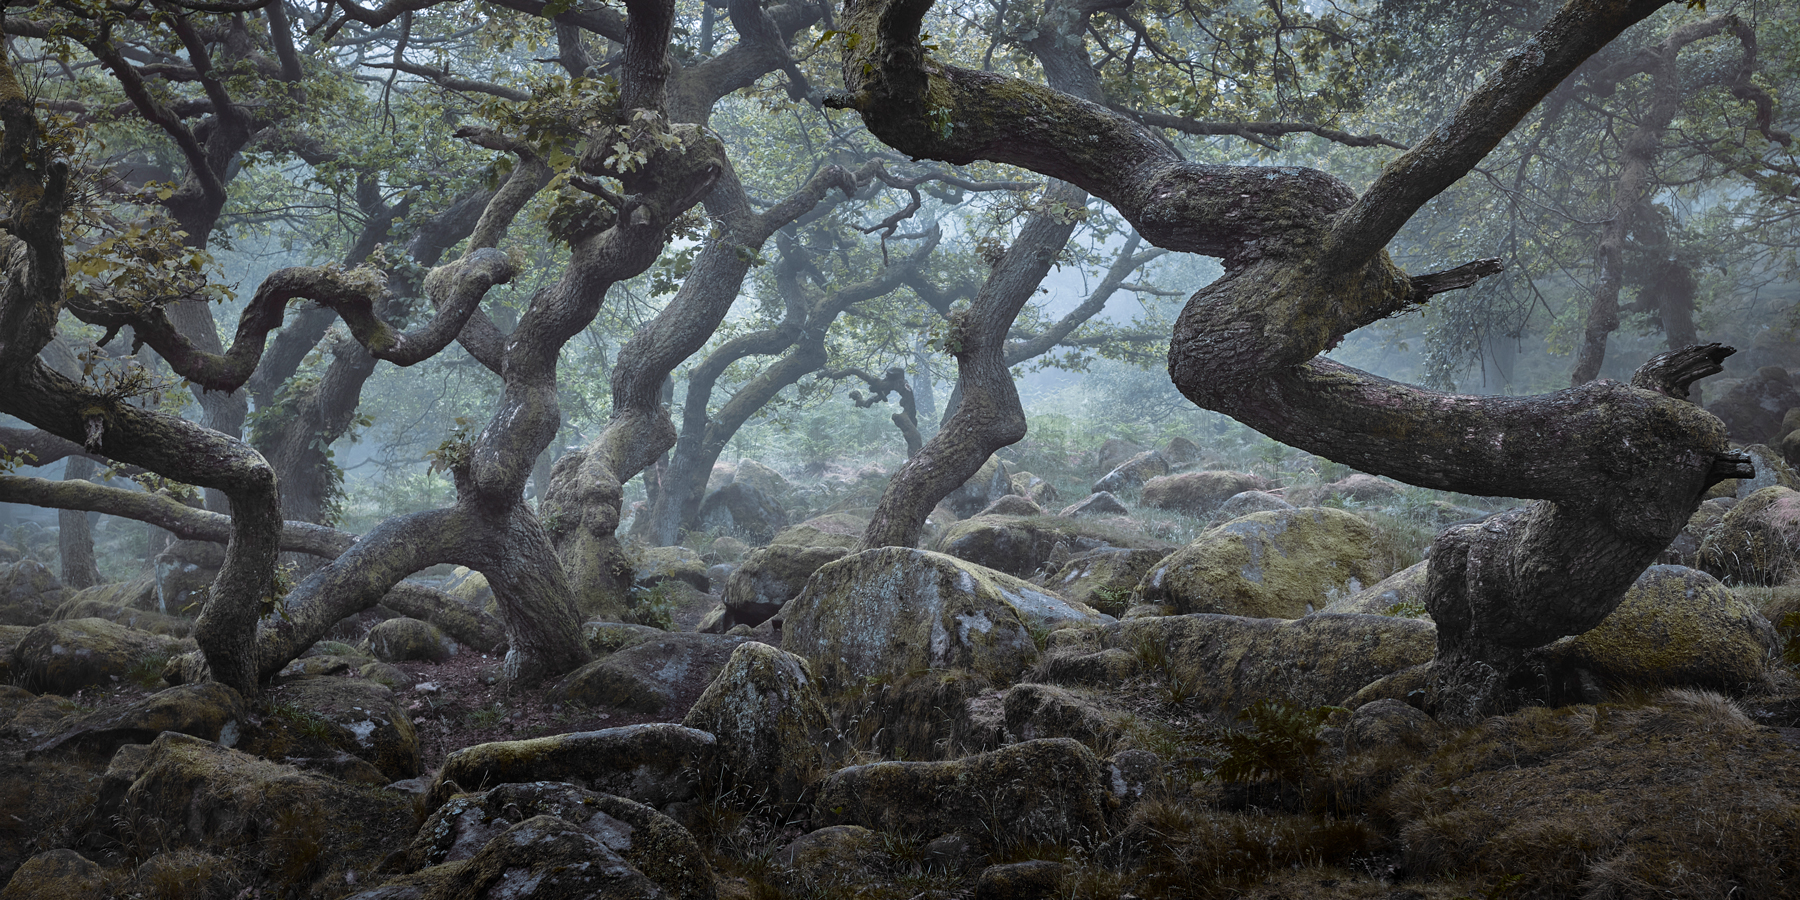 Padley Gorge - Twisted Oaks